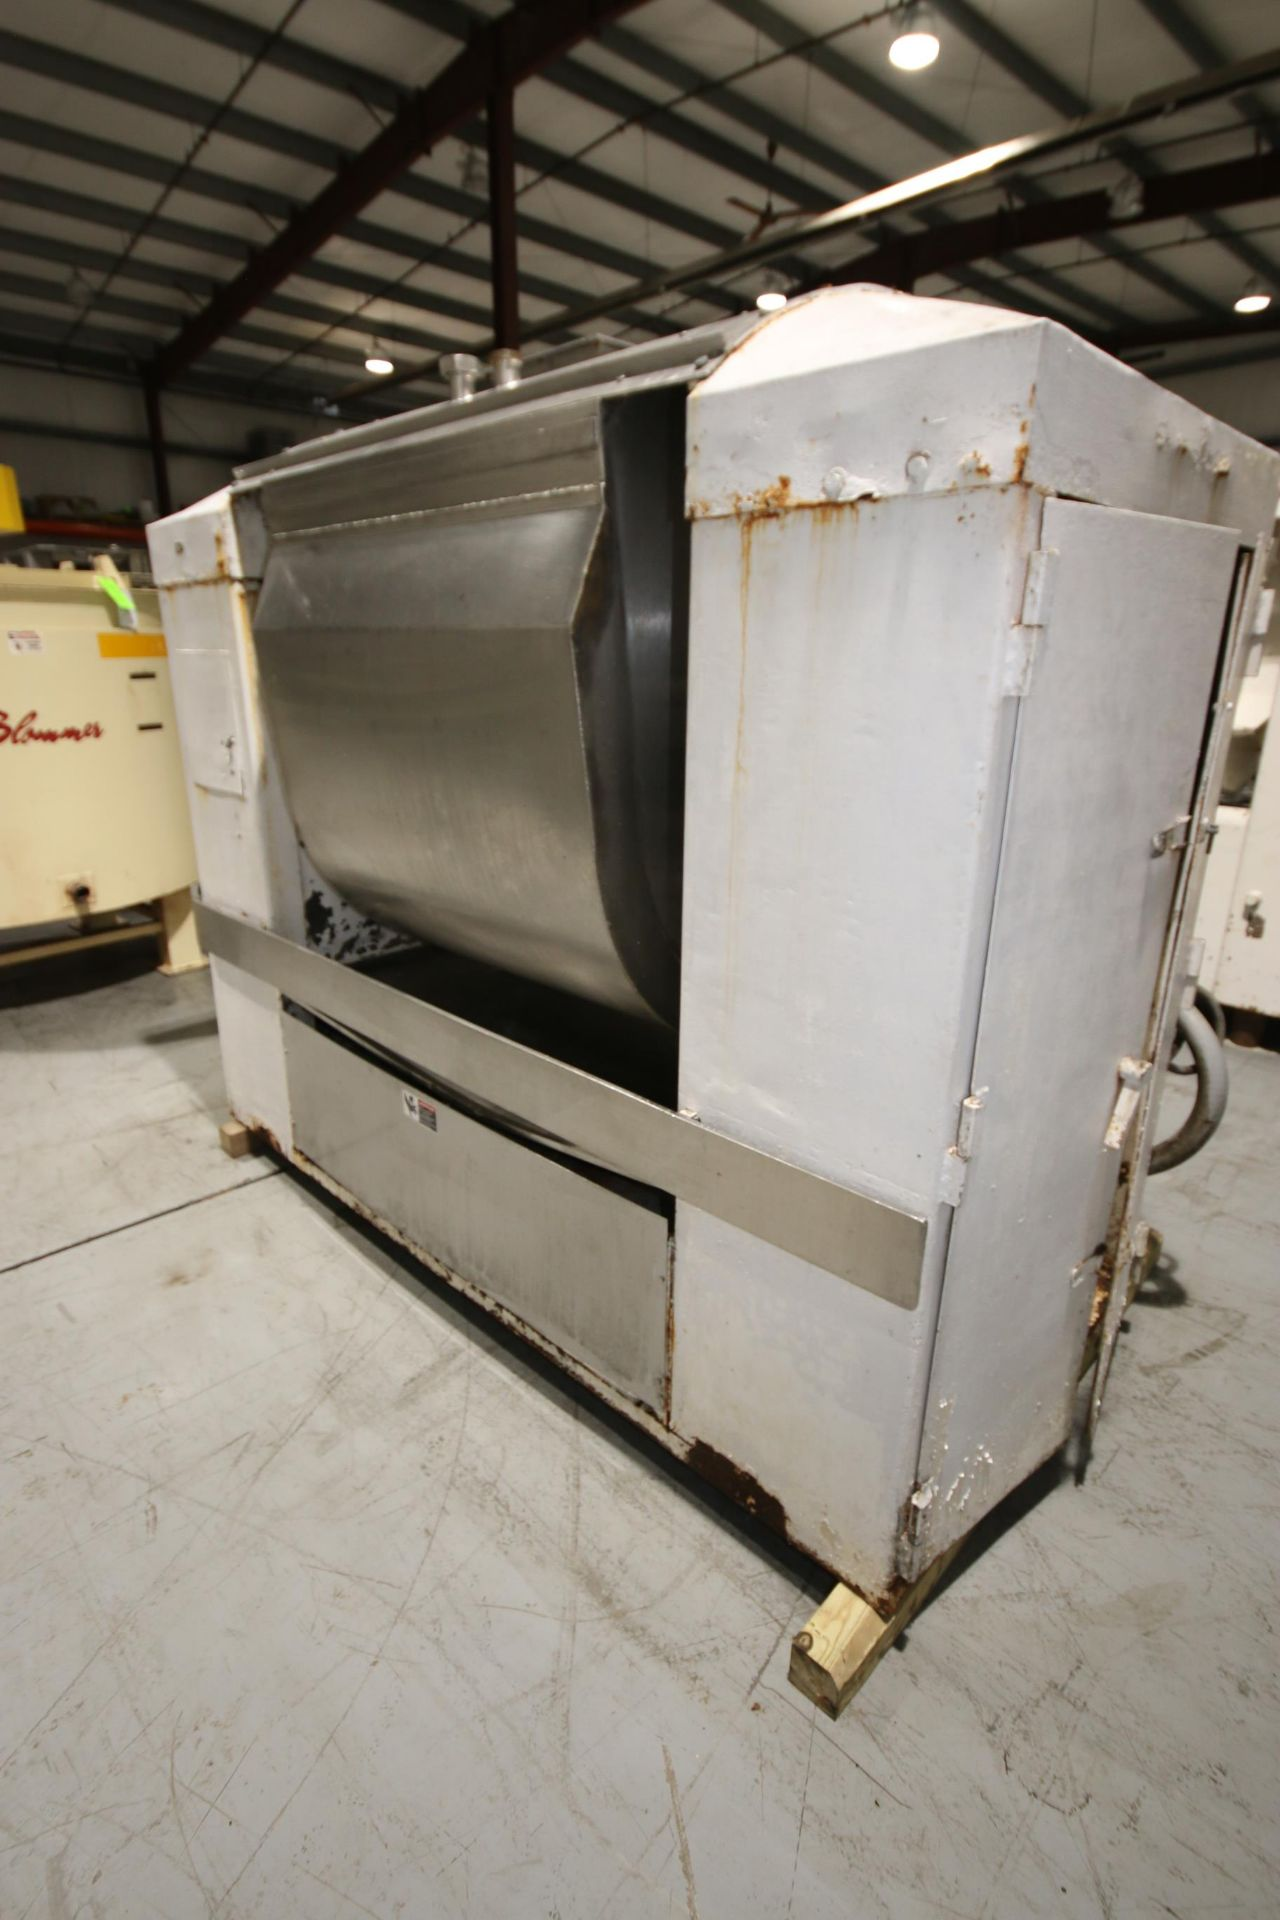 Lot 29 - Double Wall Single Arm S/S Dough Mixer, with 15/60 hp Bottom Mounted Motor, 885/1775 RPMs, with On